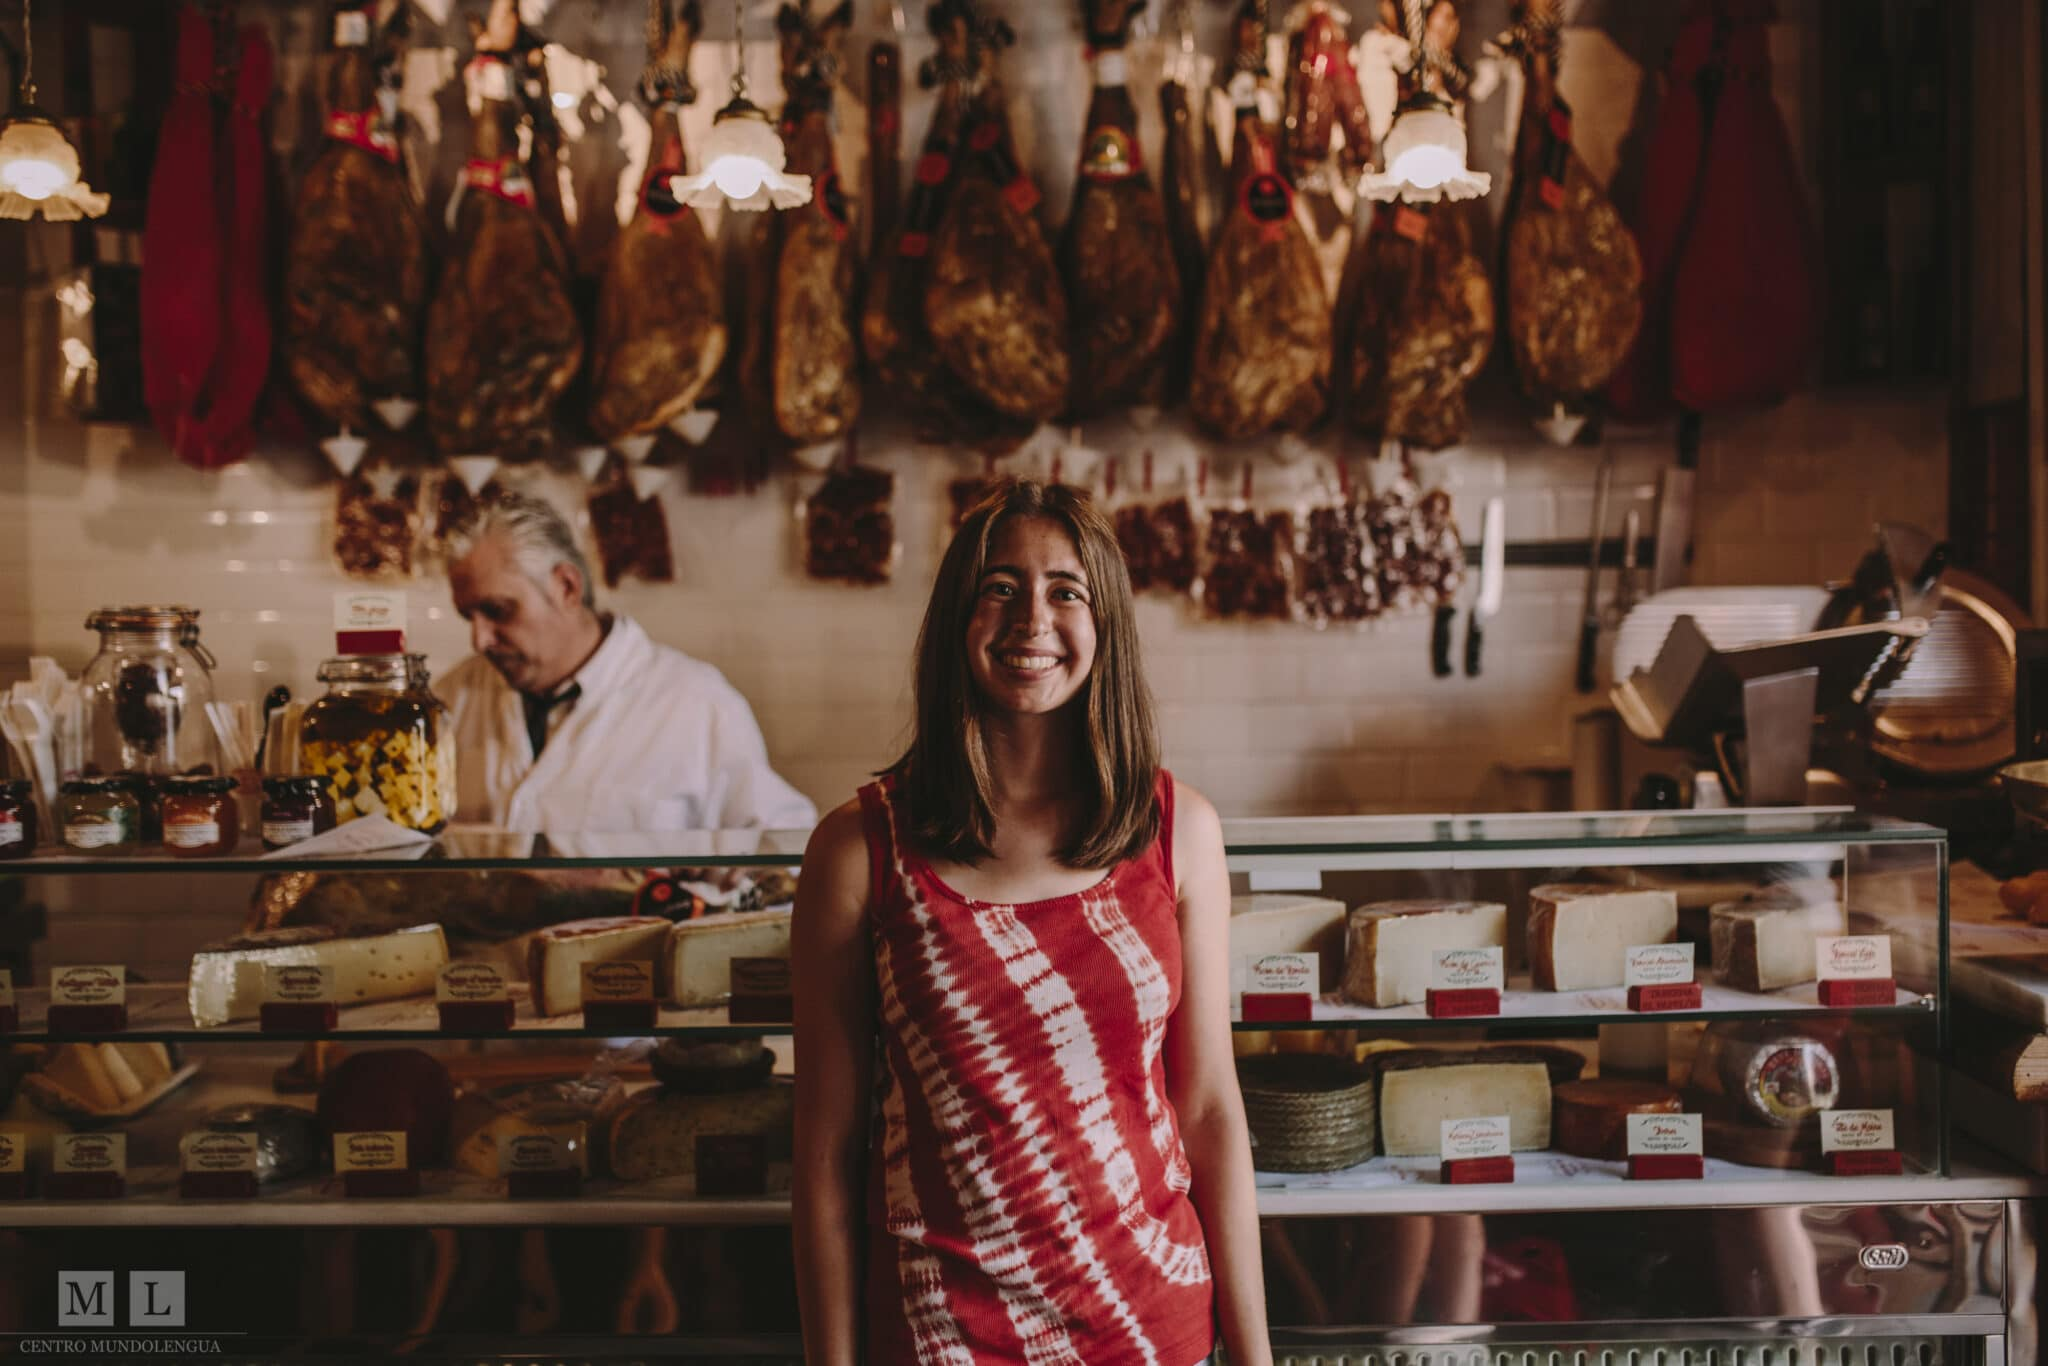 How to survive as a vegetarian in Spain